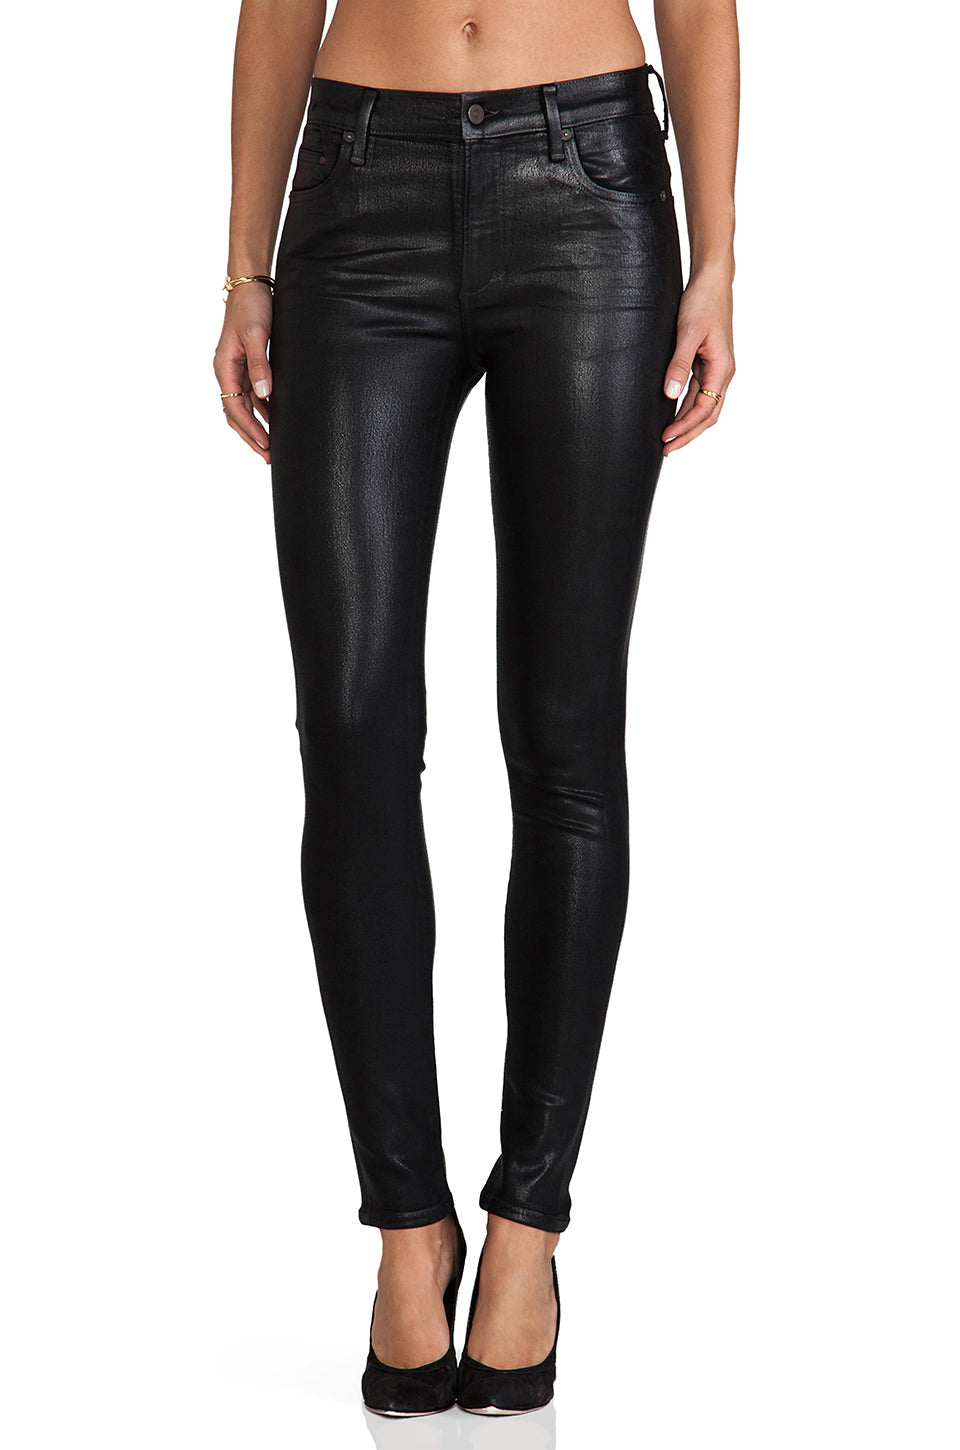 Rocket High Rise Coated Skinny In Black